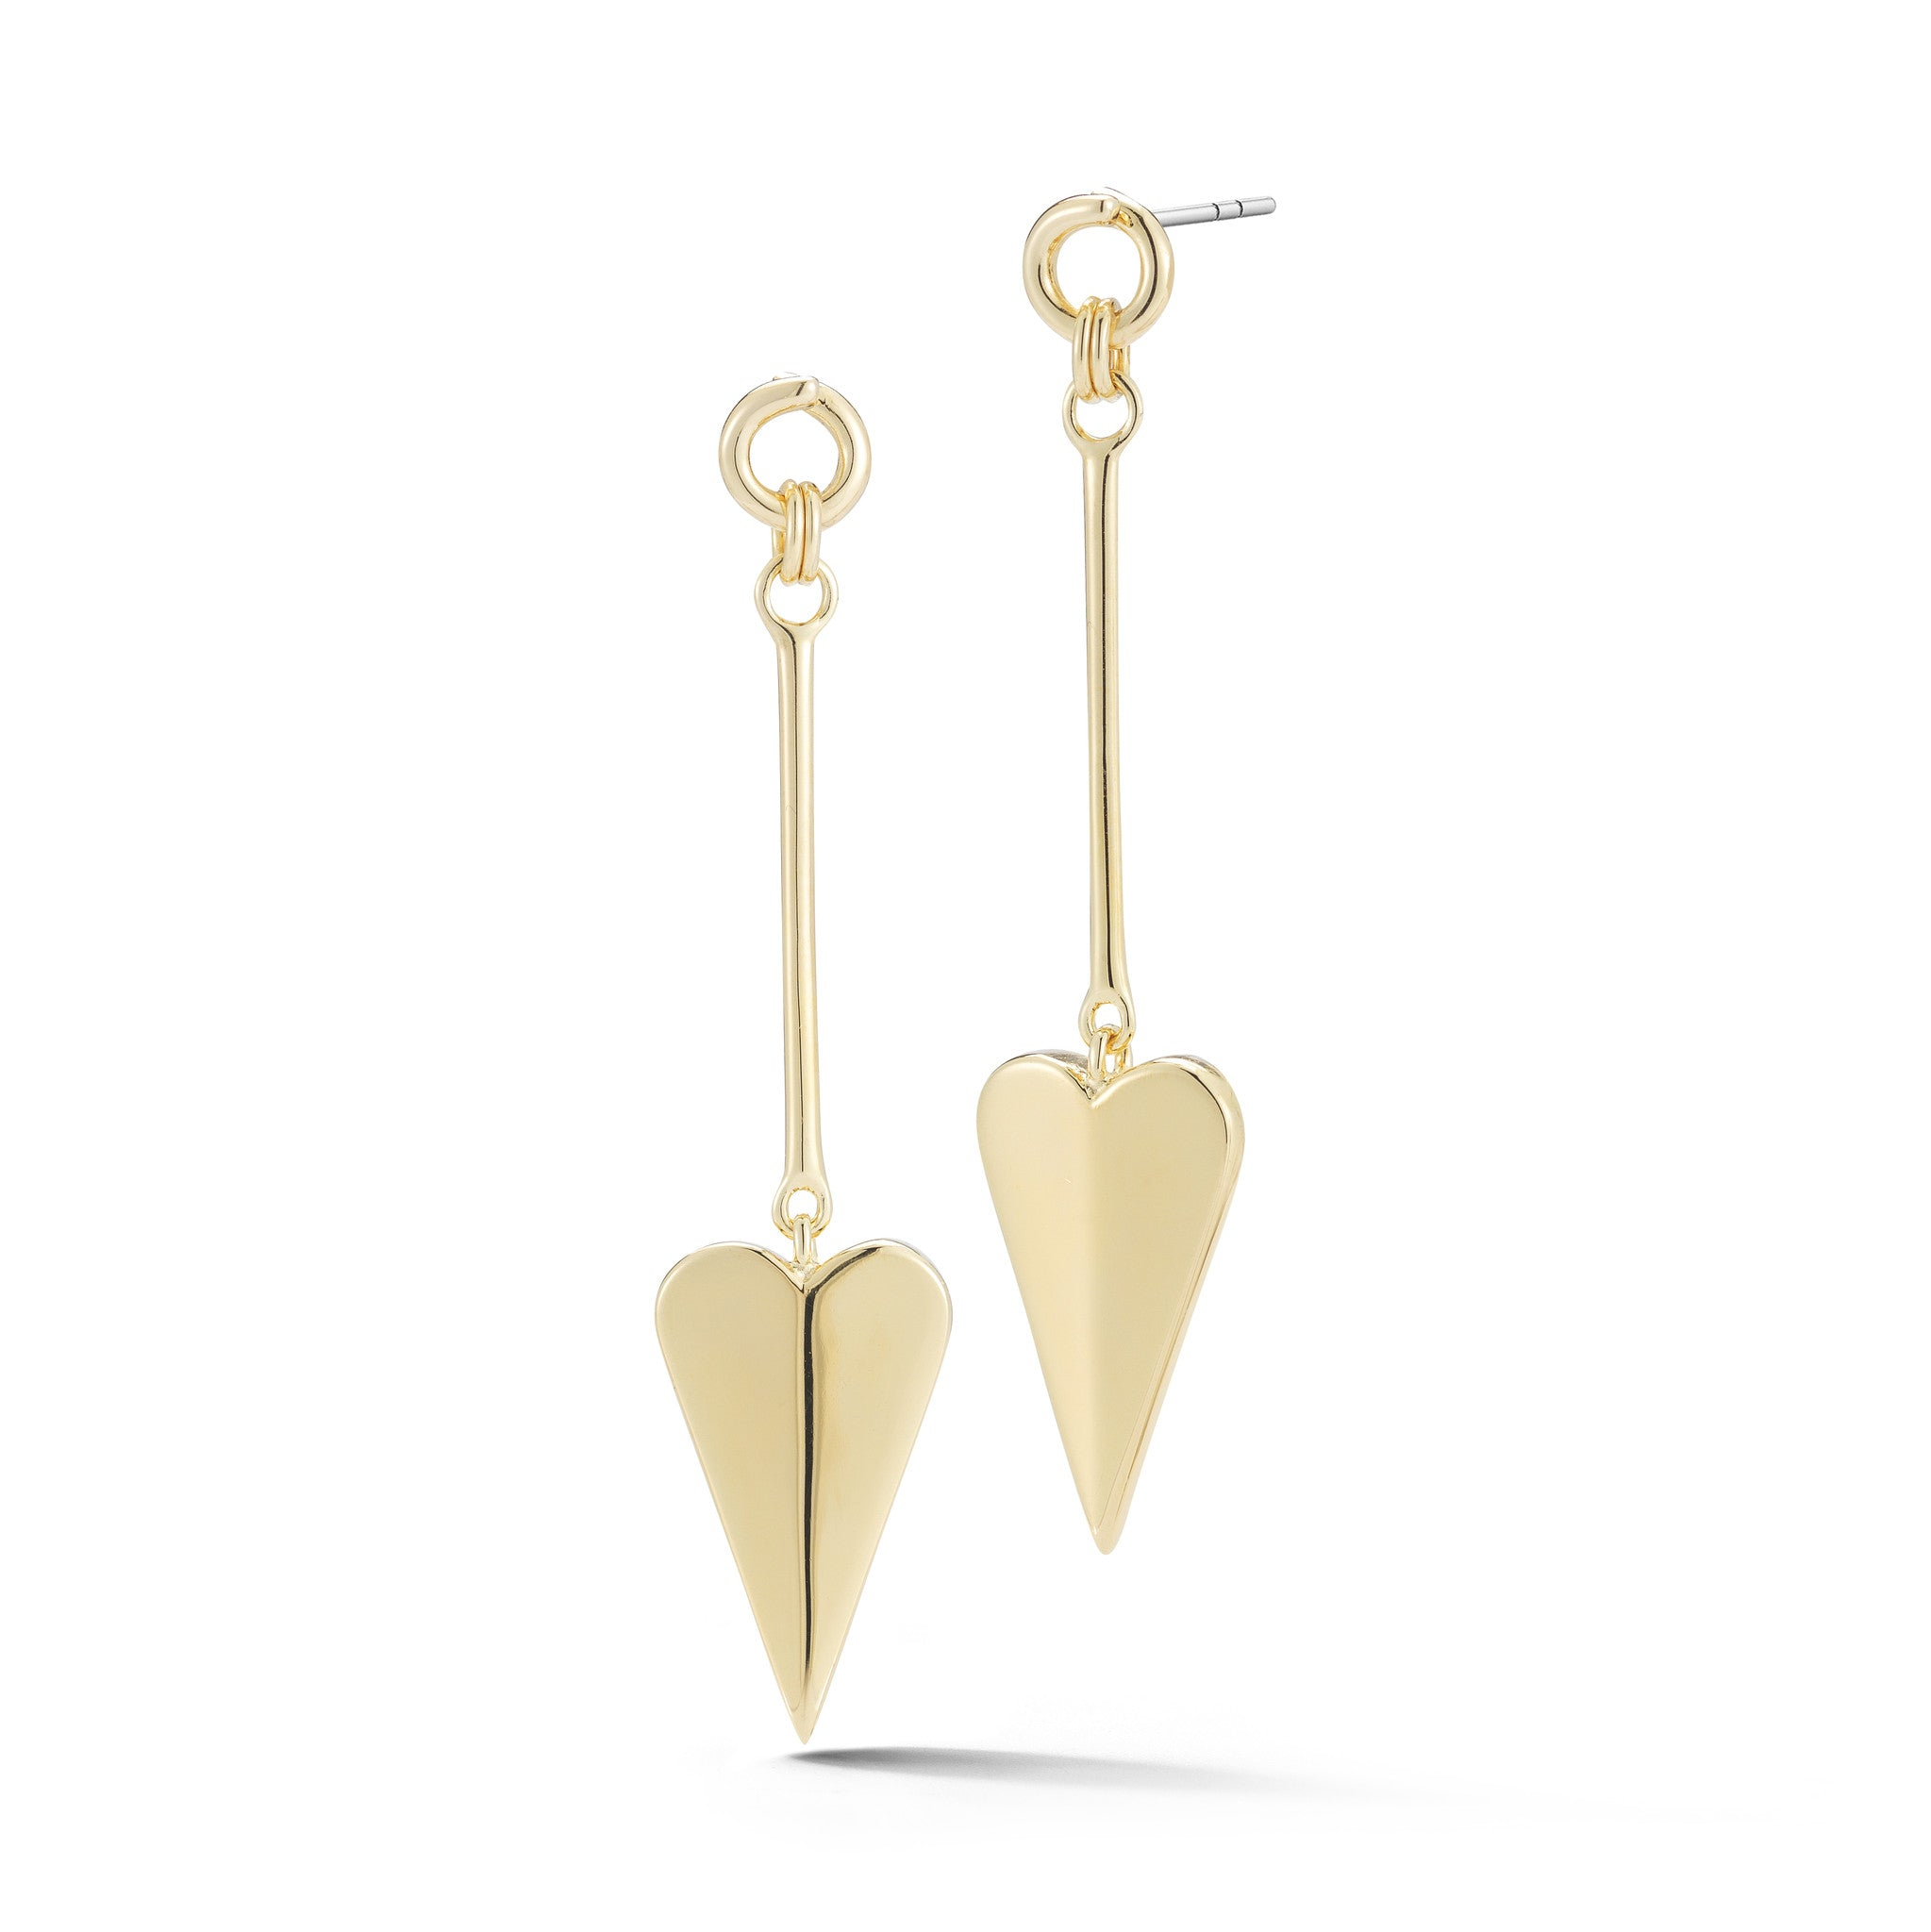 ELIZABETH AND JAMES - GOLD HEART DROP EARRINGS